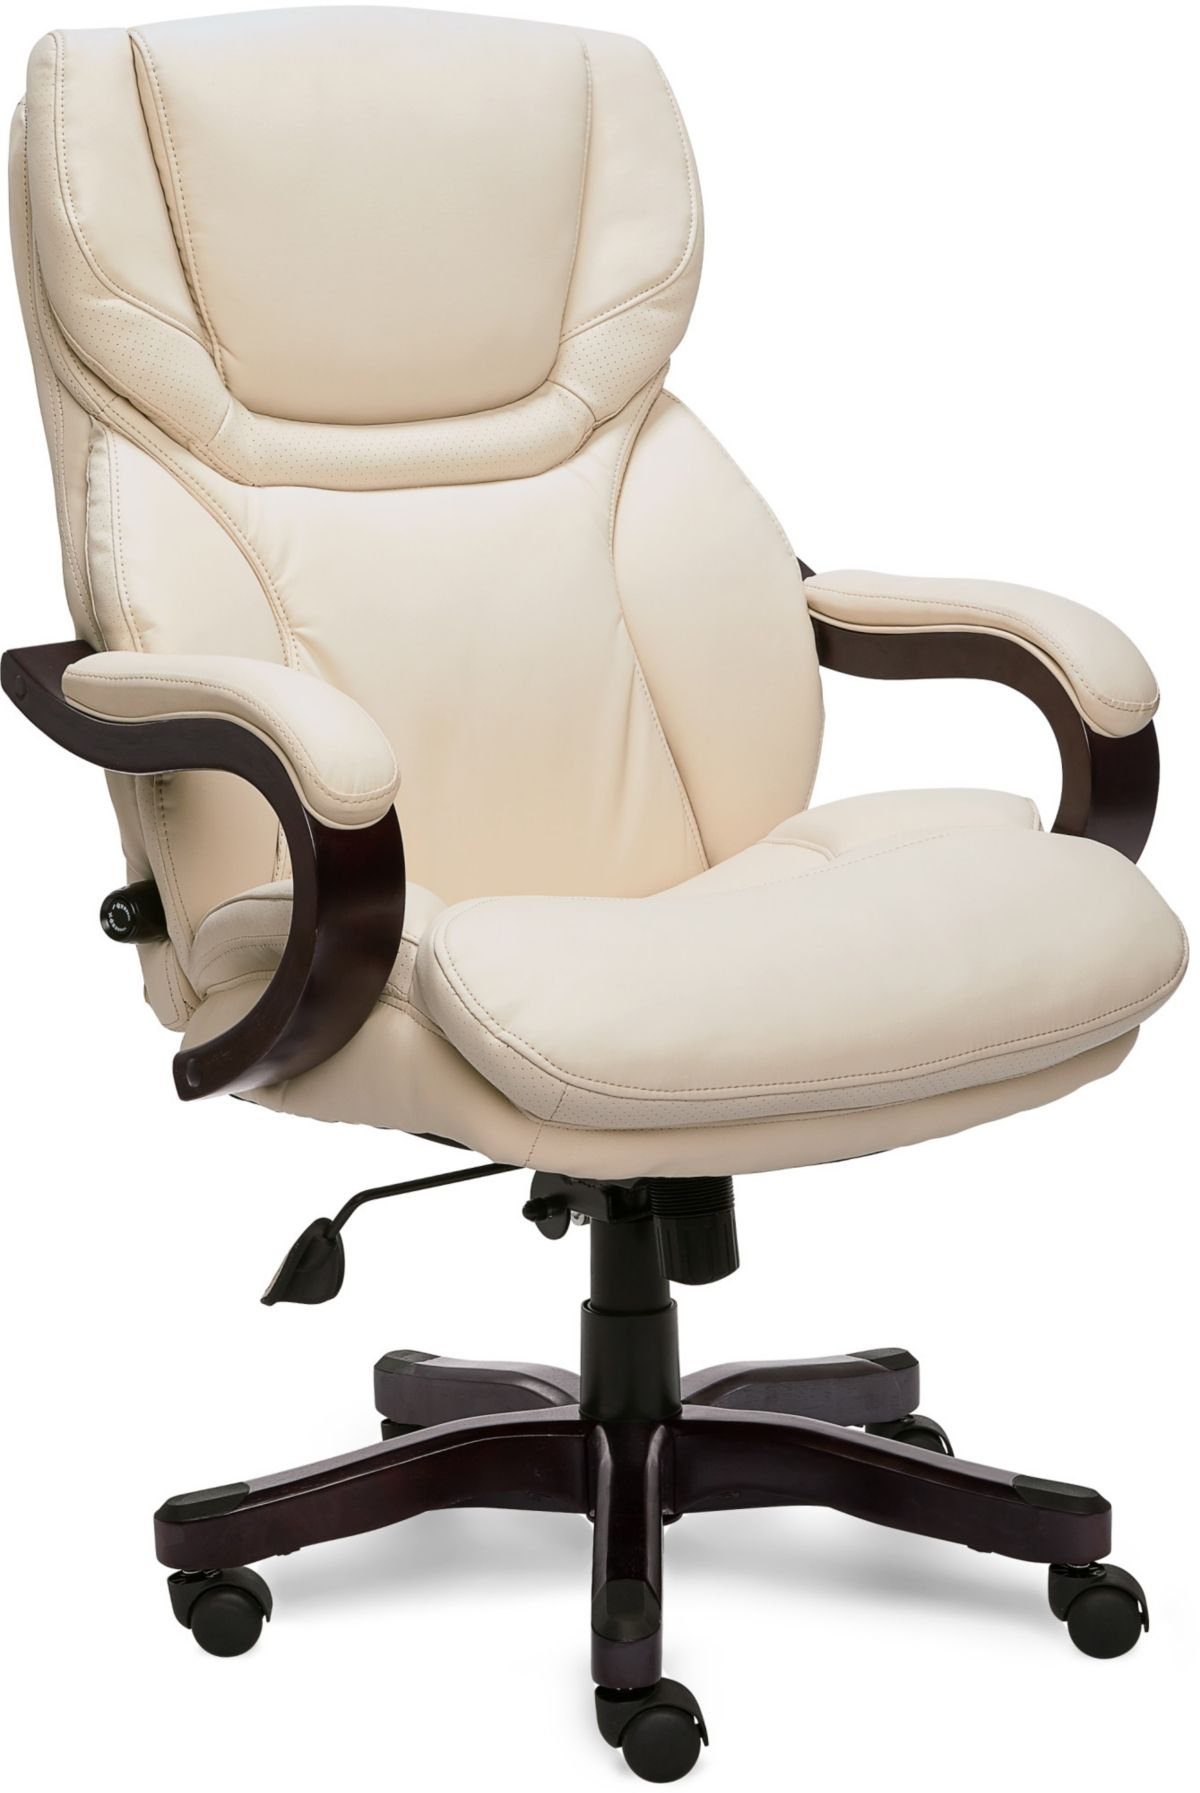 Serta Big and Tall Executive Office Chair & Reviews